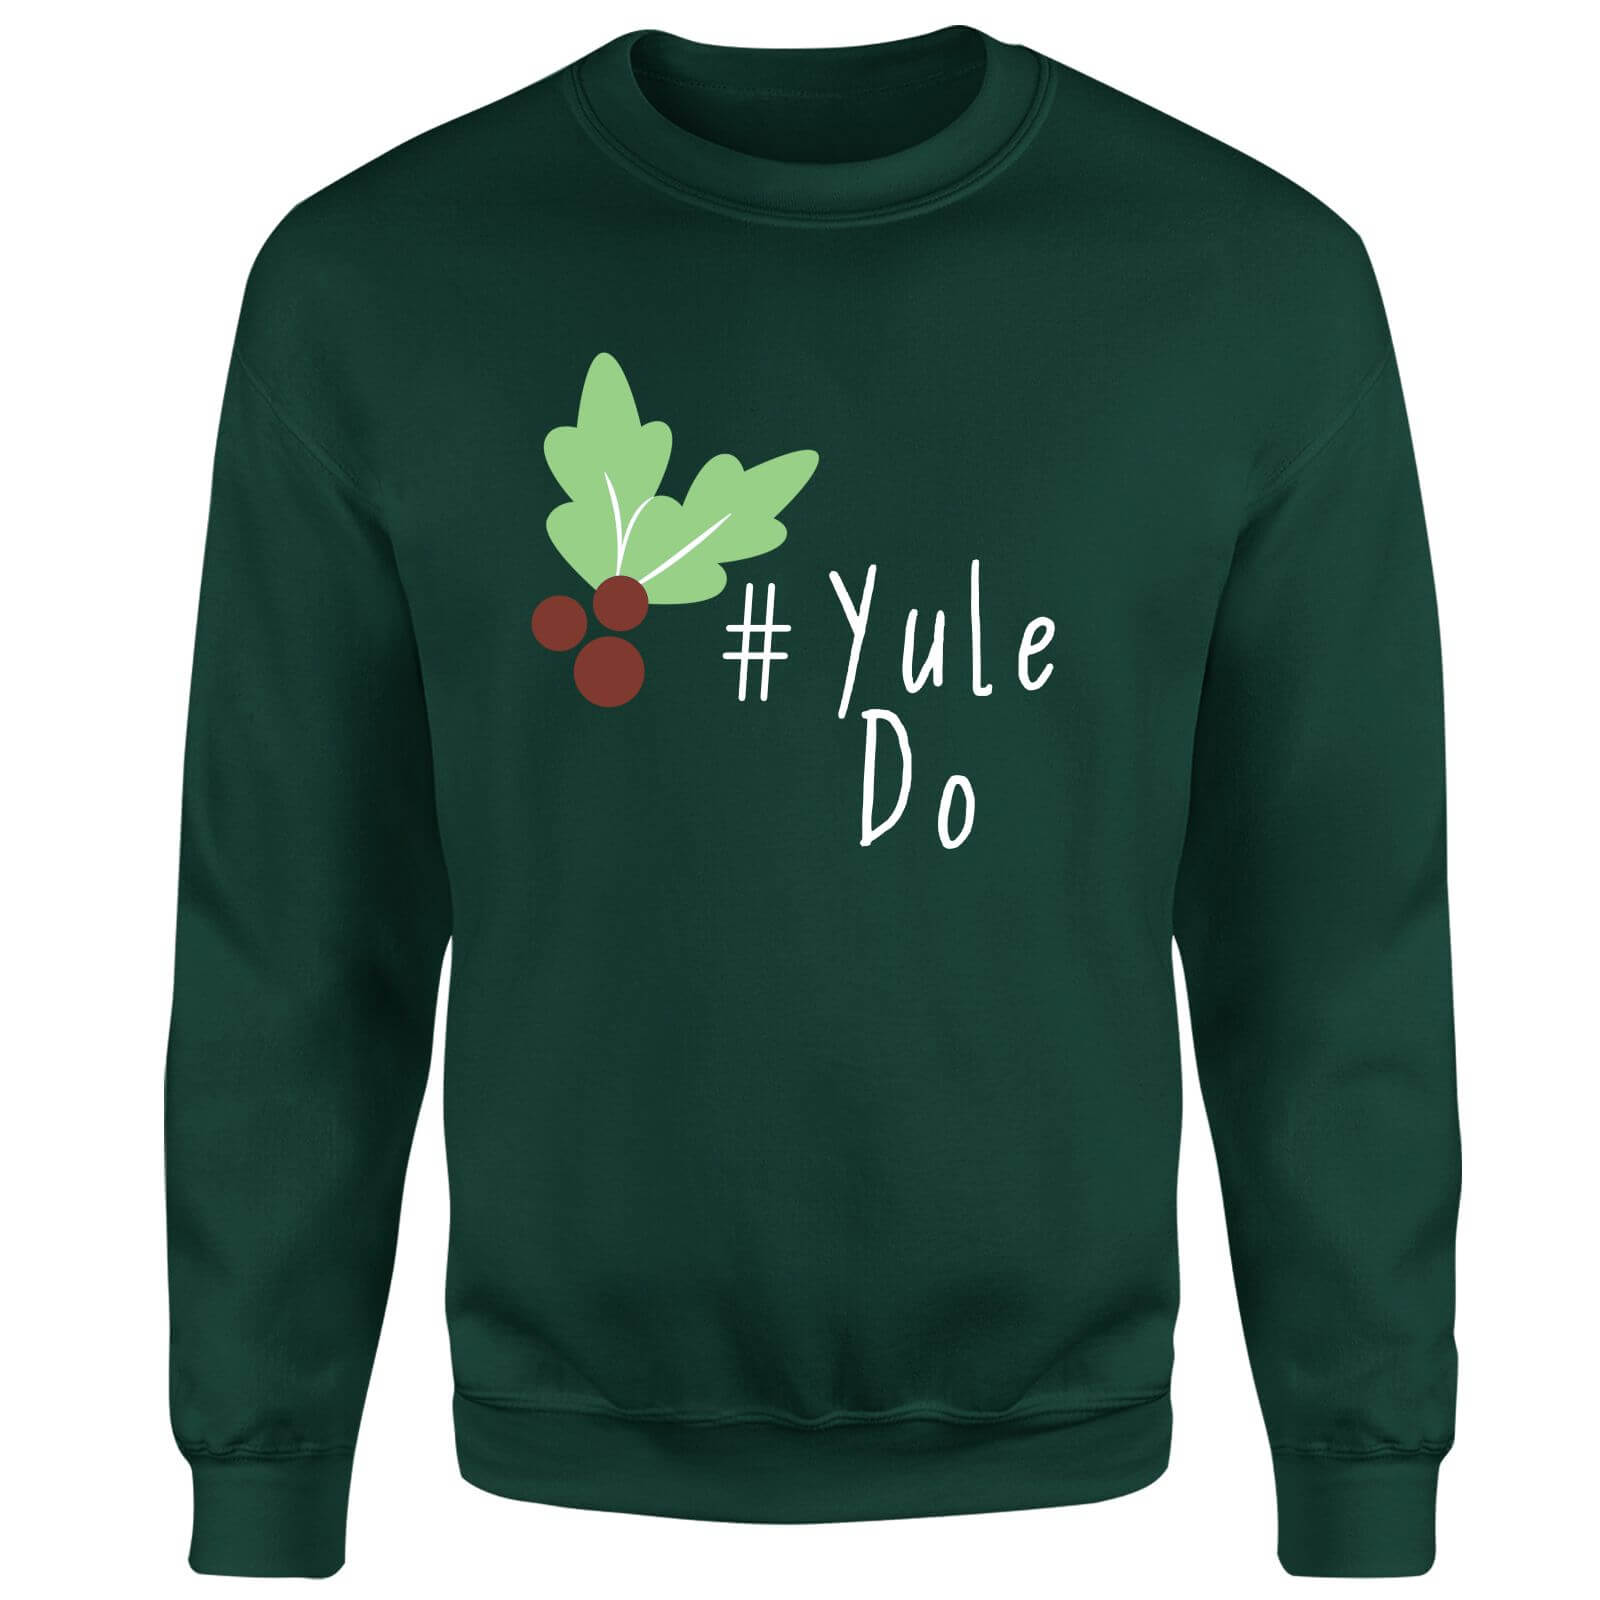 Yule Do Sweatshirt - Forest Green